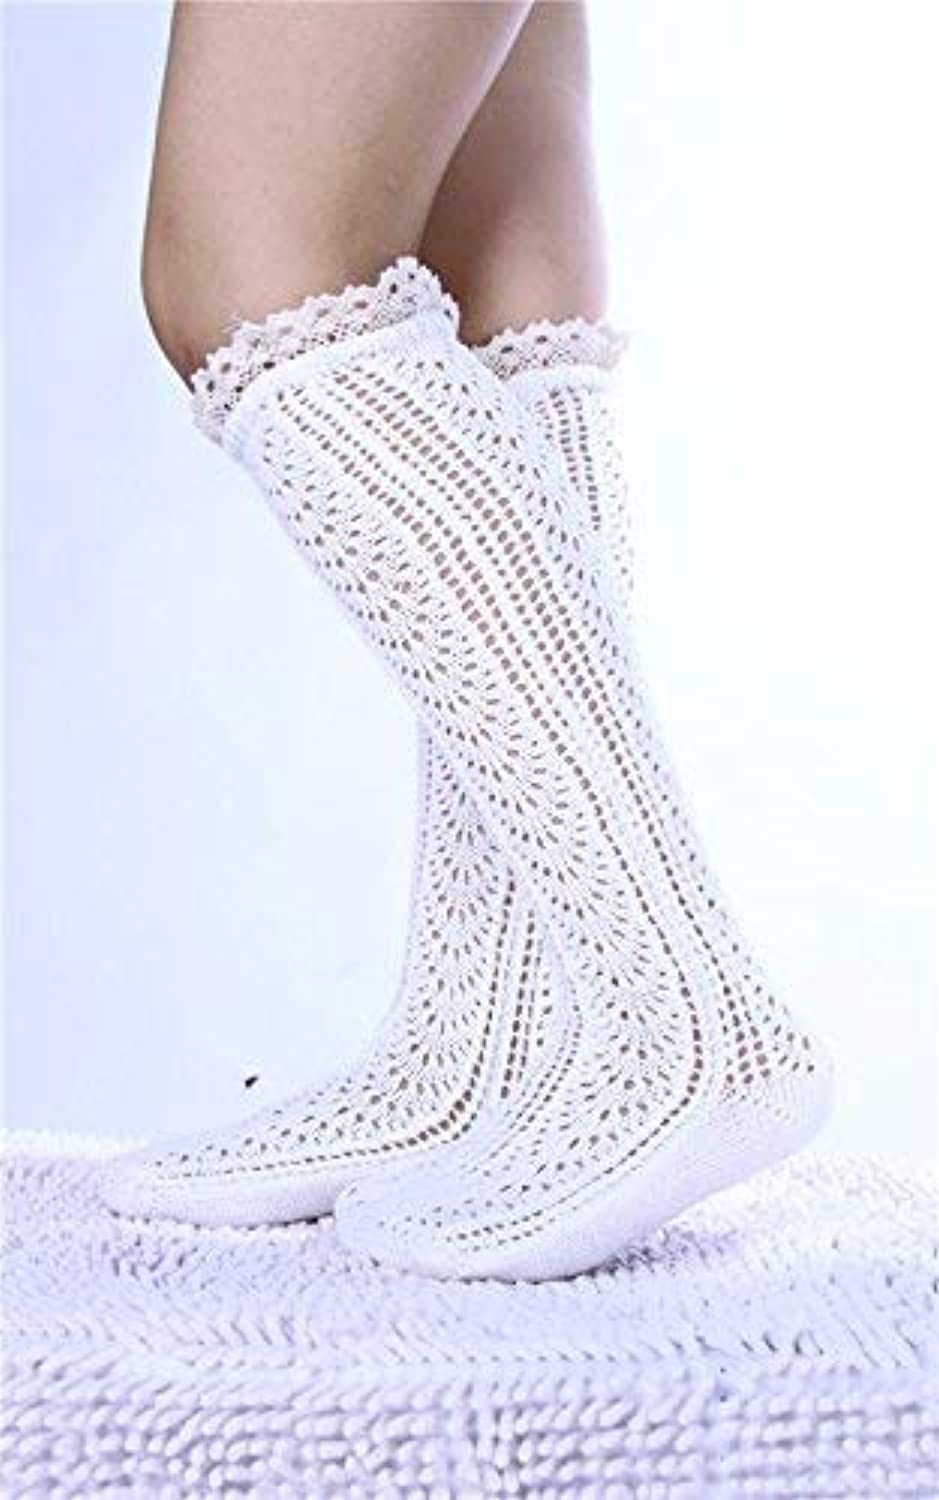 Comfortable Arm Warmer Leg Stocking Japanese and Korean Knitting Openwork Socks Female Students Autumn and Winter Lace Stacking Socks Woolen Leggings (color   White)